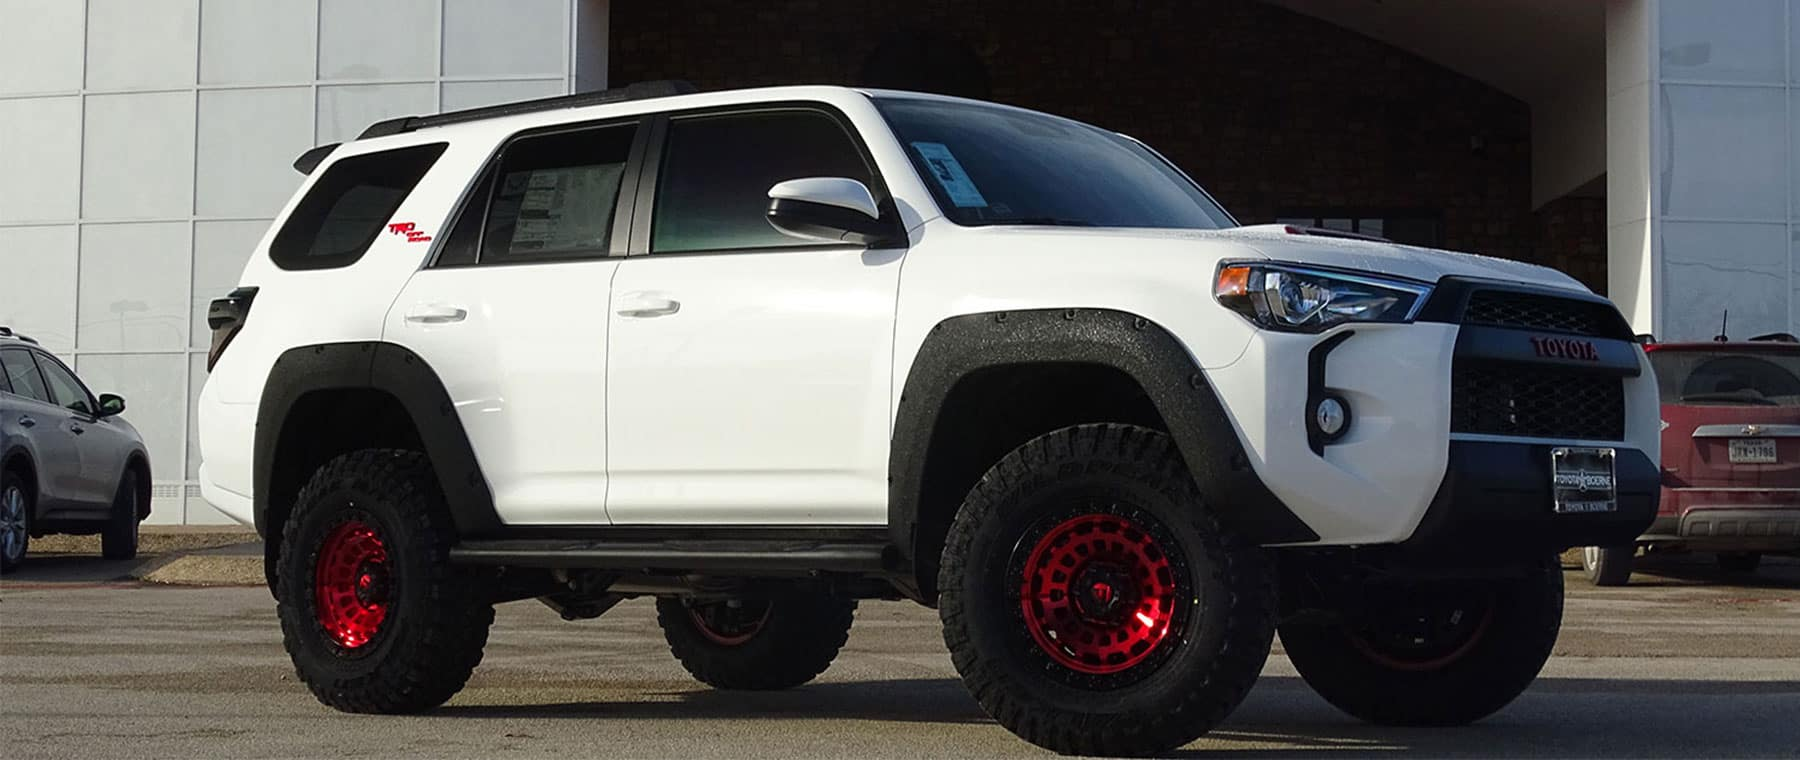 Let Us Build Your Custom Toyota Truck At Toyota Of Boerne